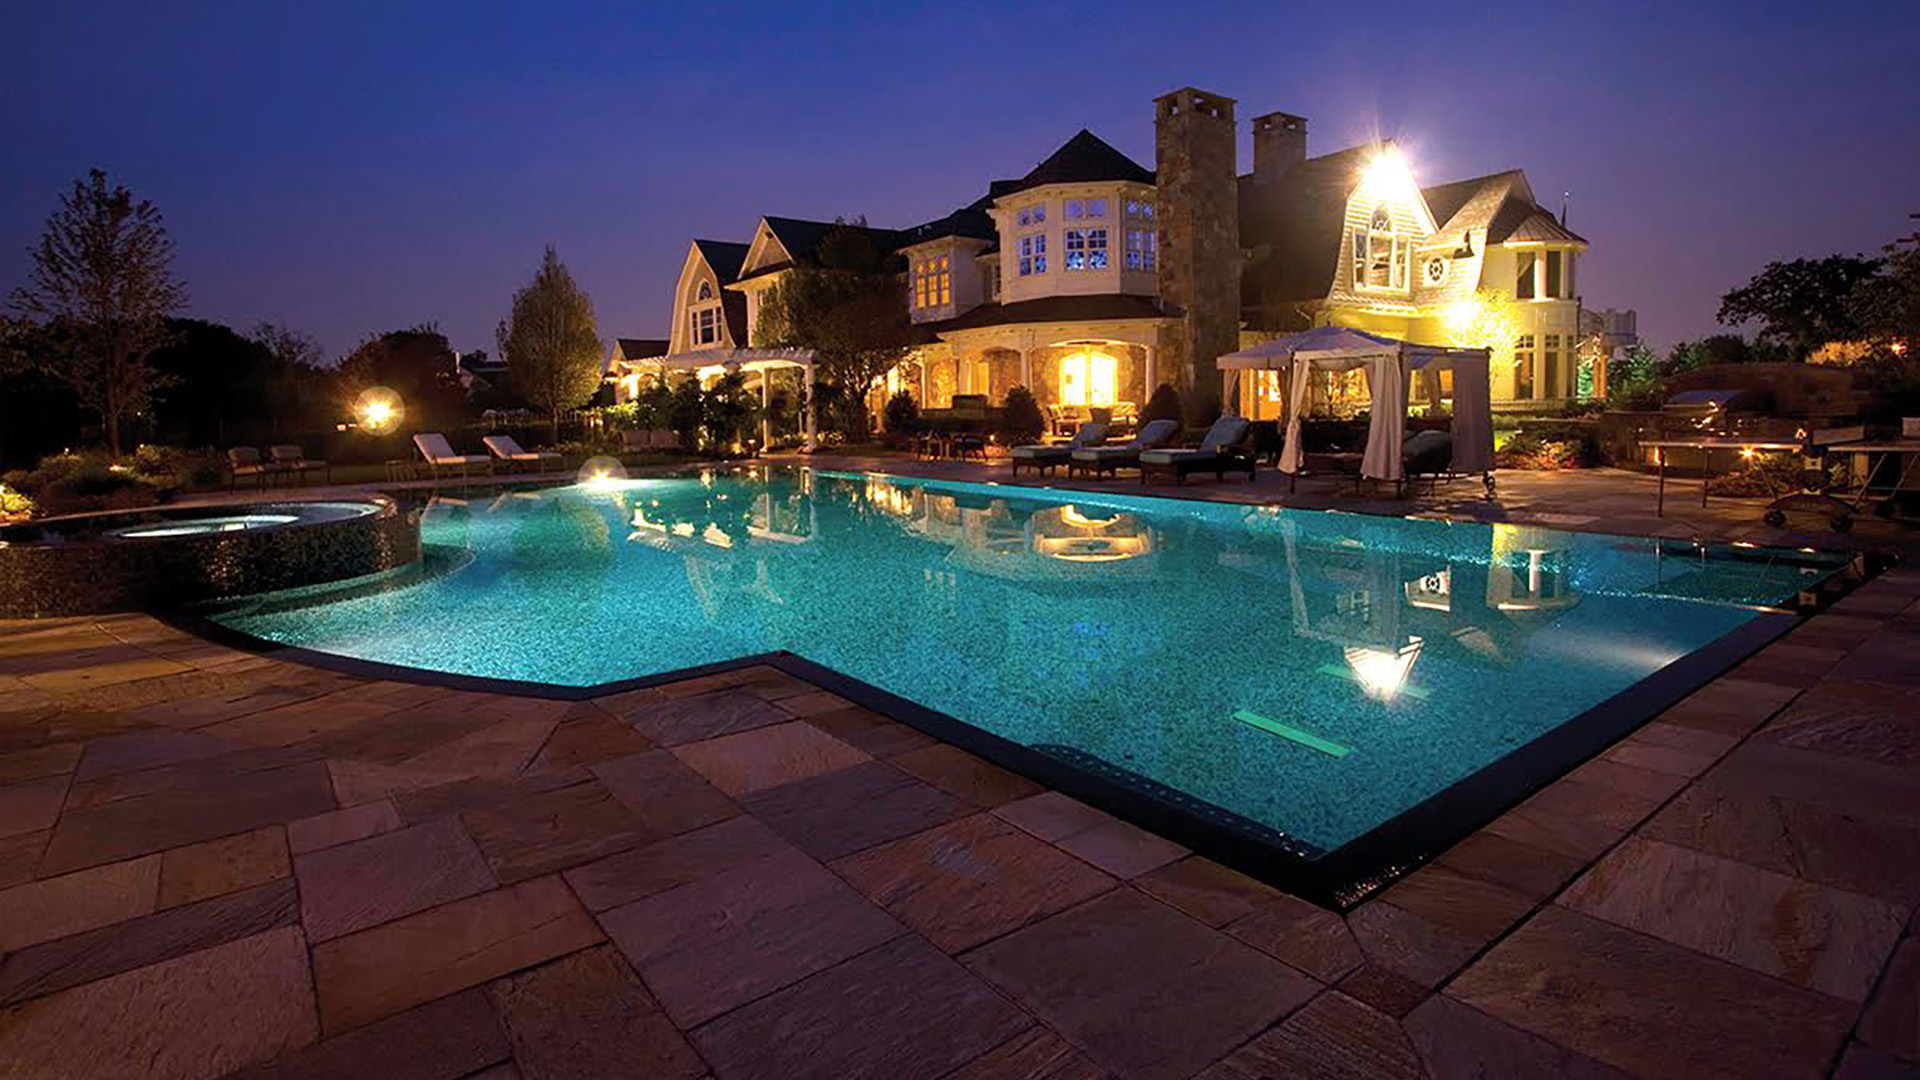 Palatial Pools Inc.: Pool Repairs, Pool Service and Pool Maintenance in Great Neck, Sands Point and Oyster Bay